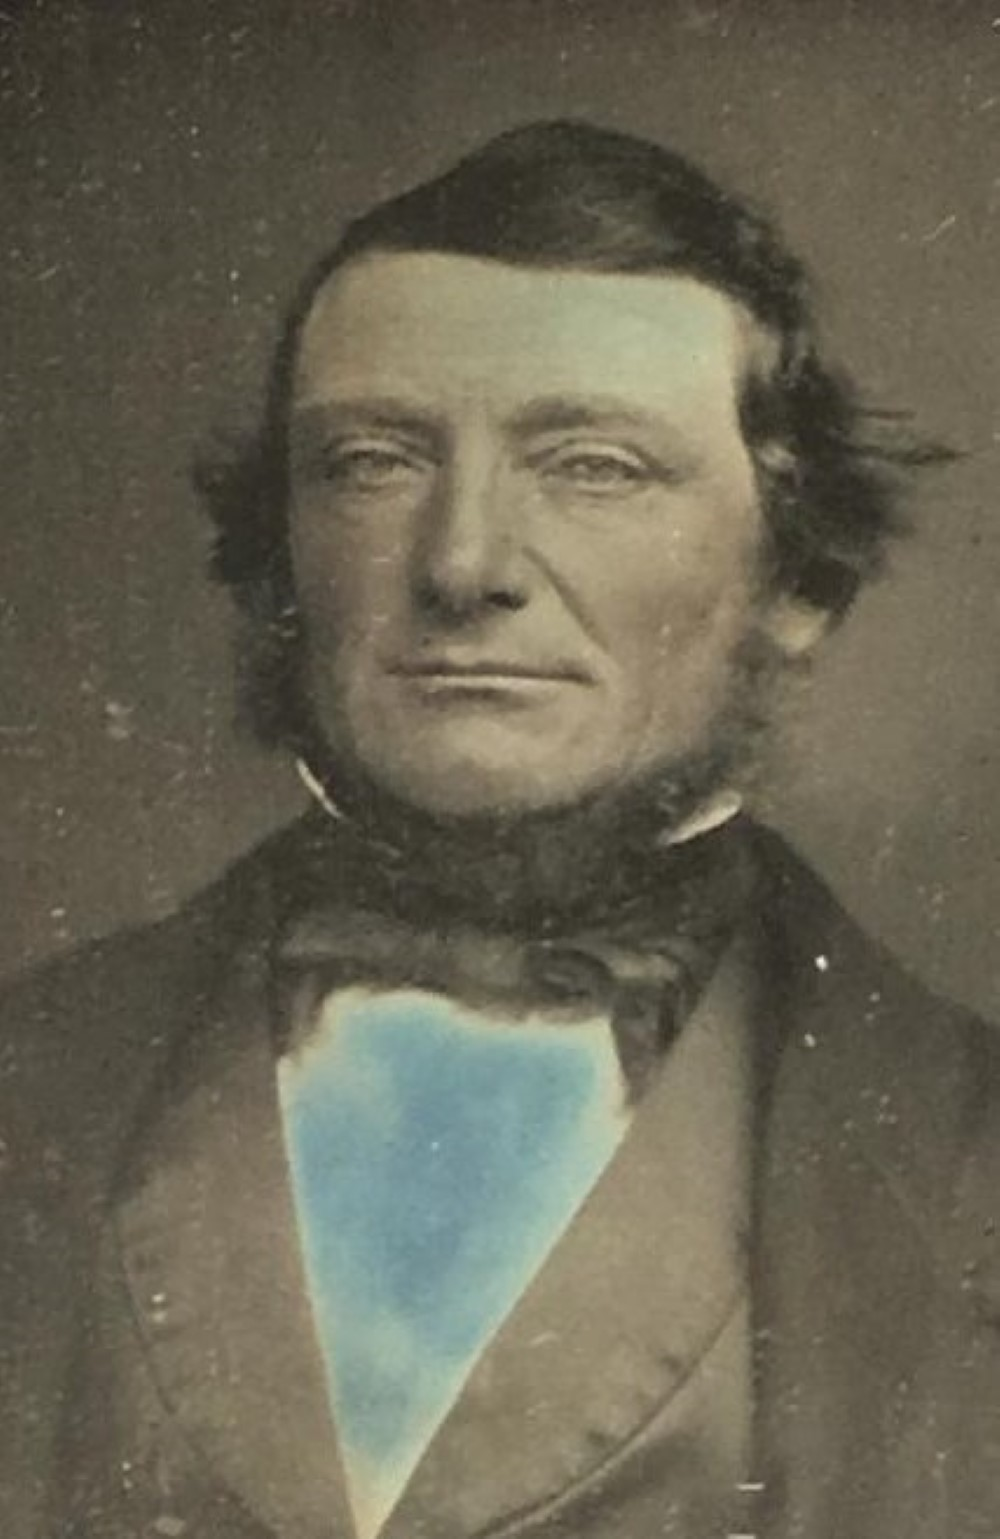 Sixth plate daguerreotype in a half case, tinted blue shirt